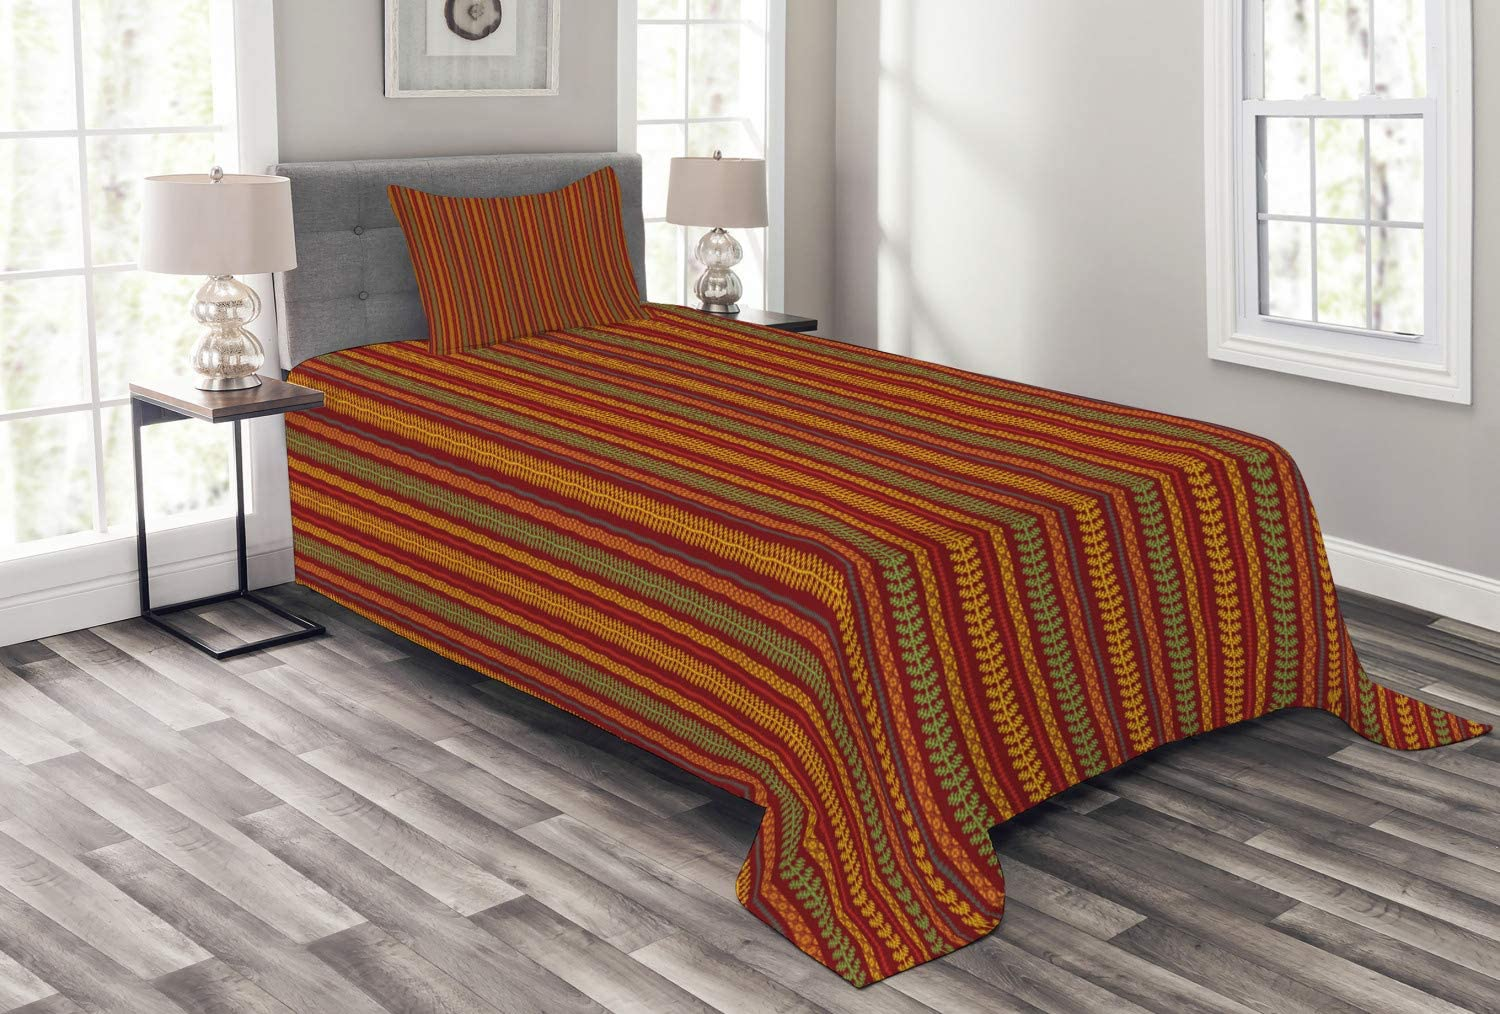 Ambesonne Oriental low-pricing Bedspread Folklore Rhom Geometric Motif Free shipping with